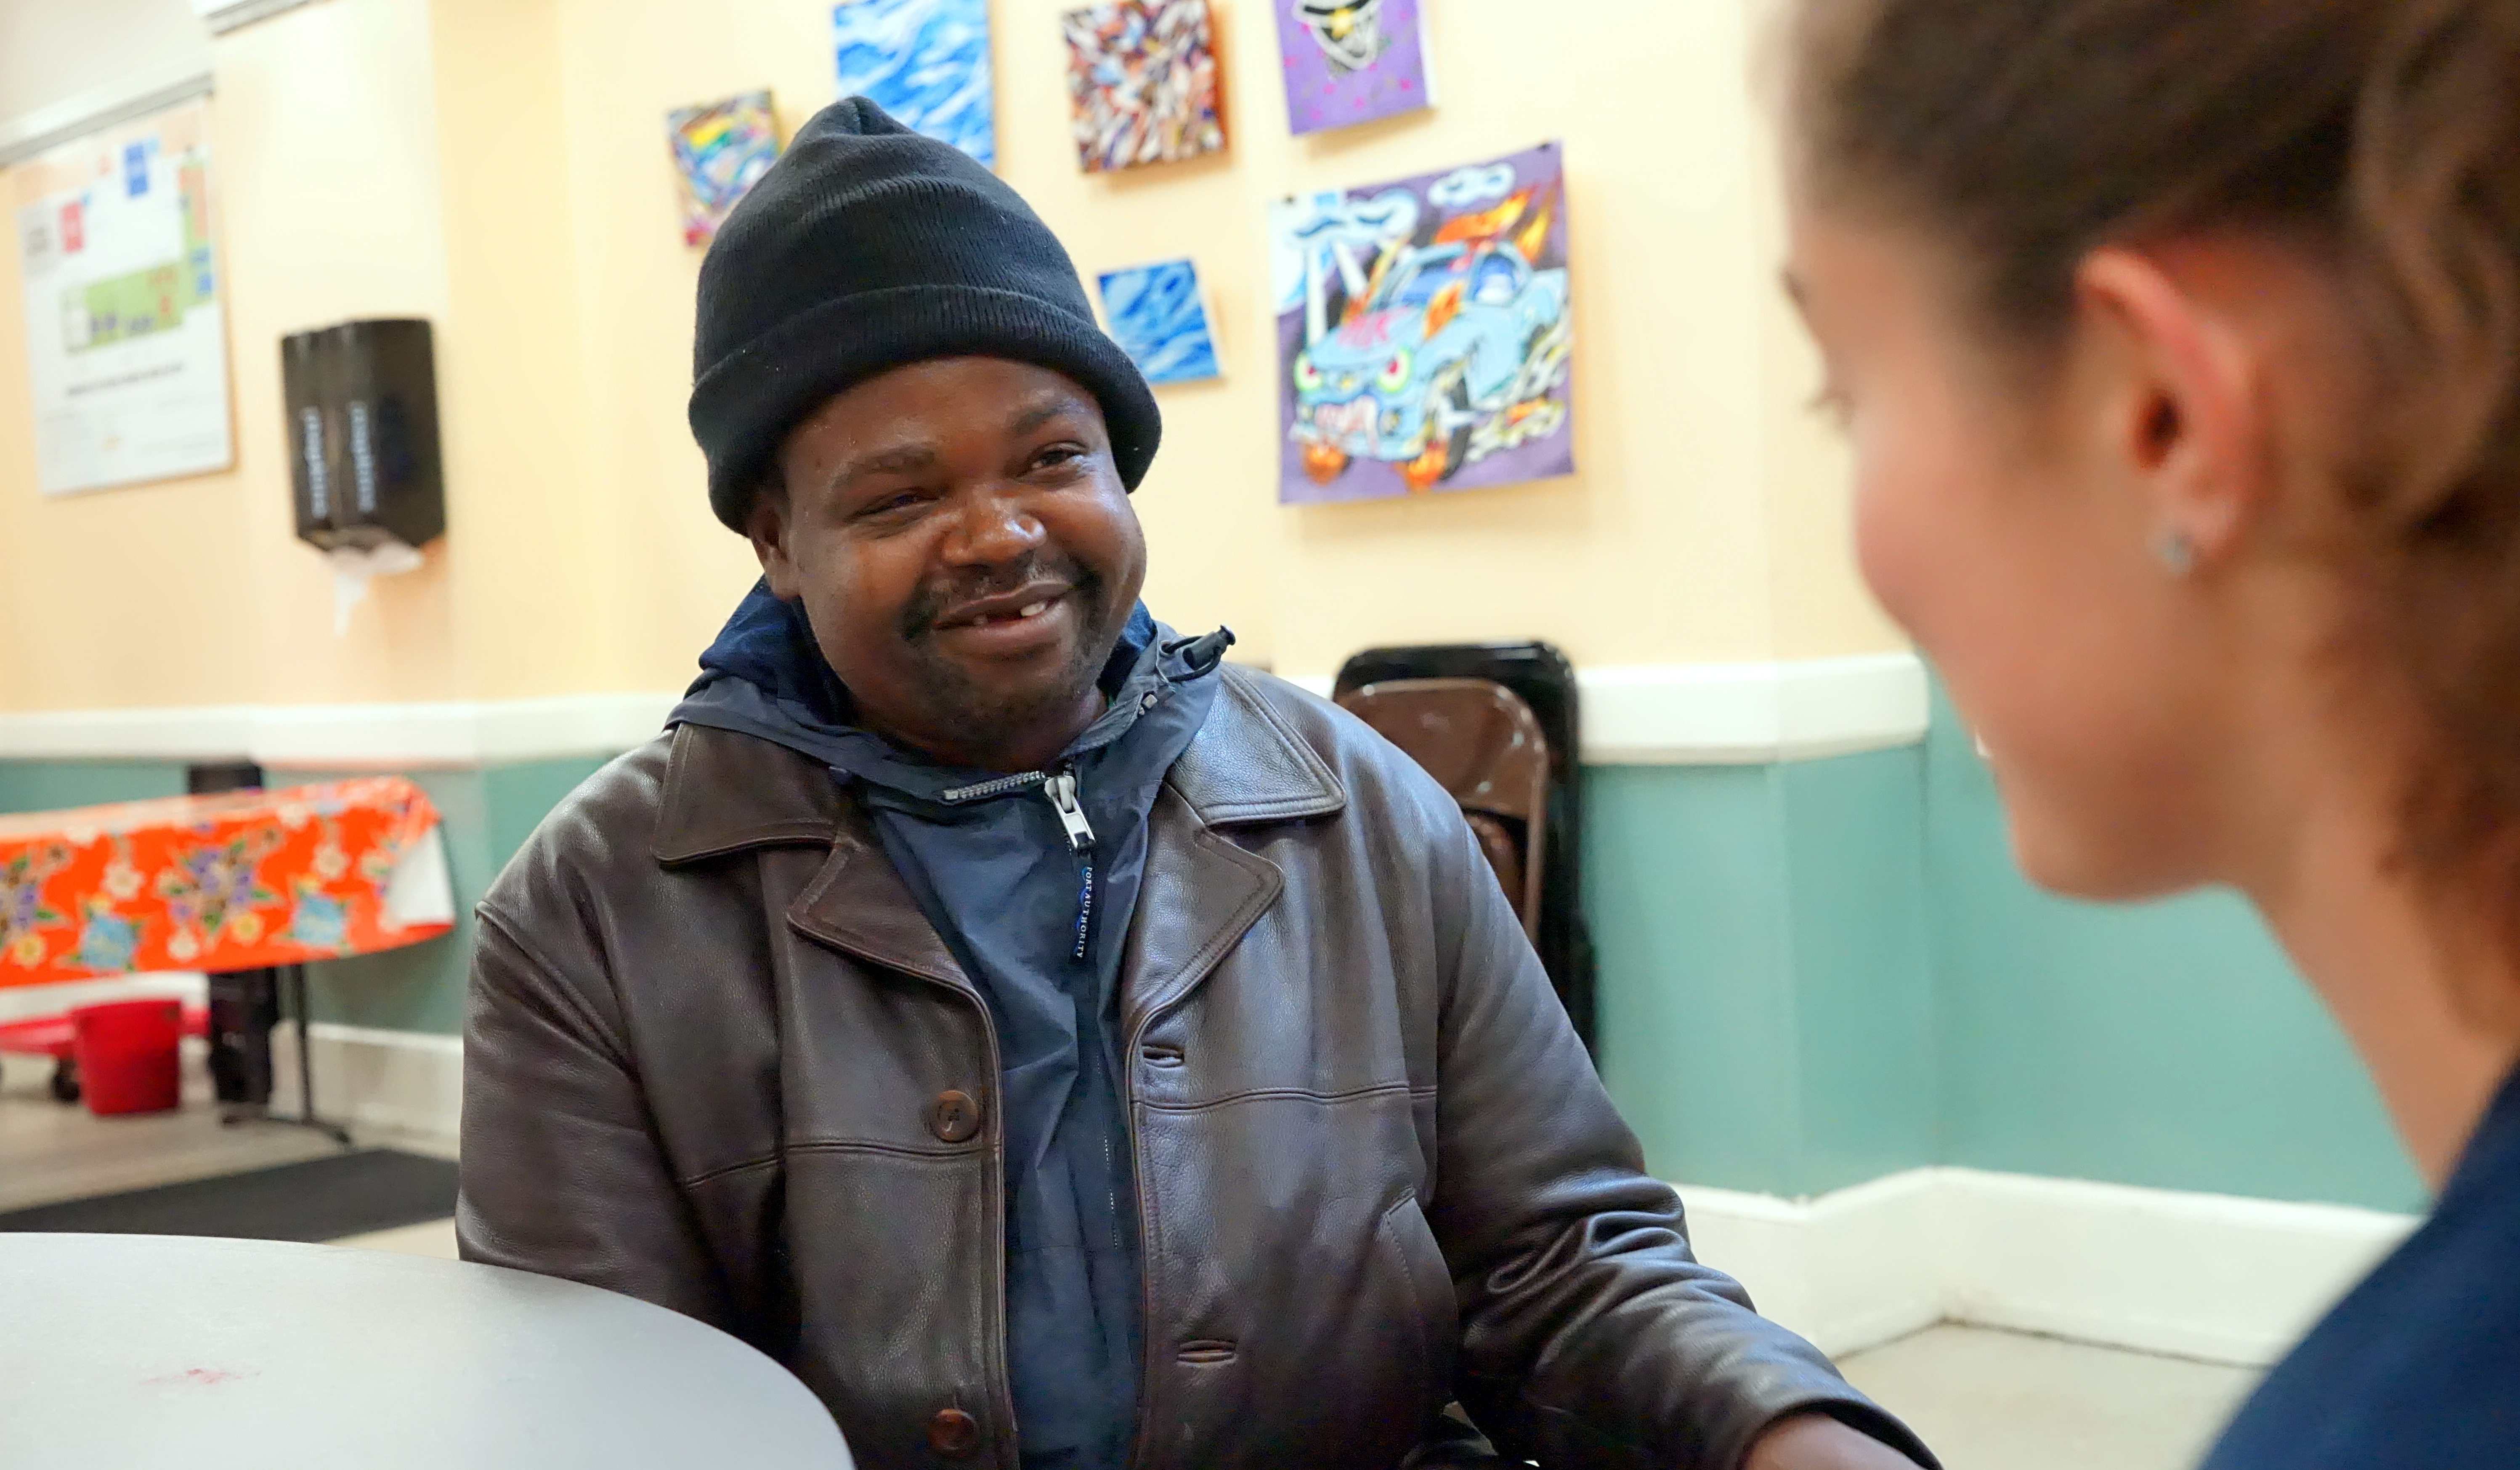 A homeless man smiling with talking with a woman